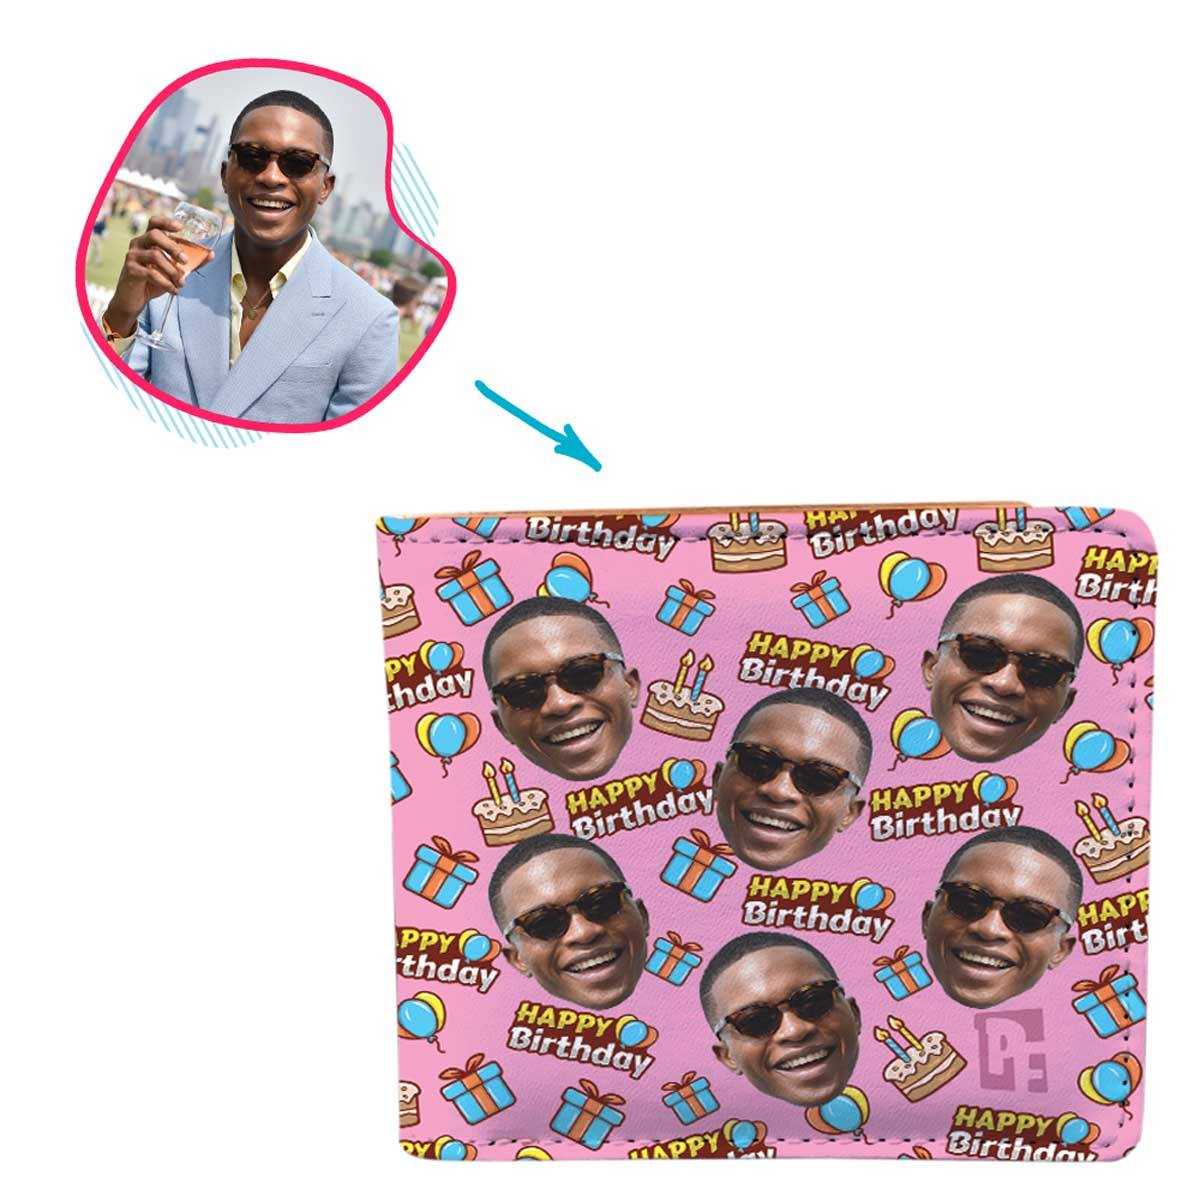 pink Birthday wallet personalized with photo of face printed on it